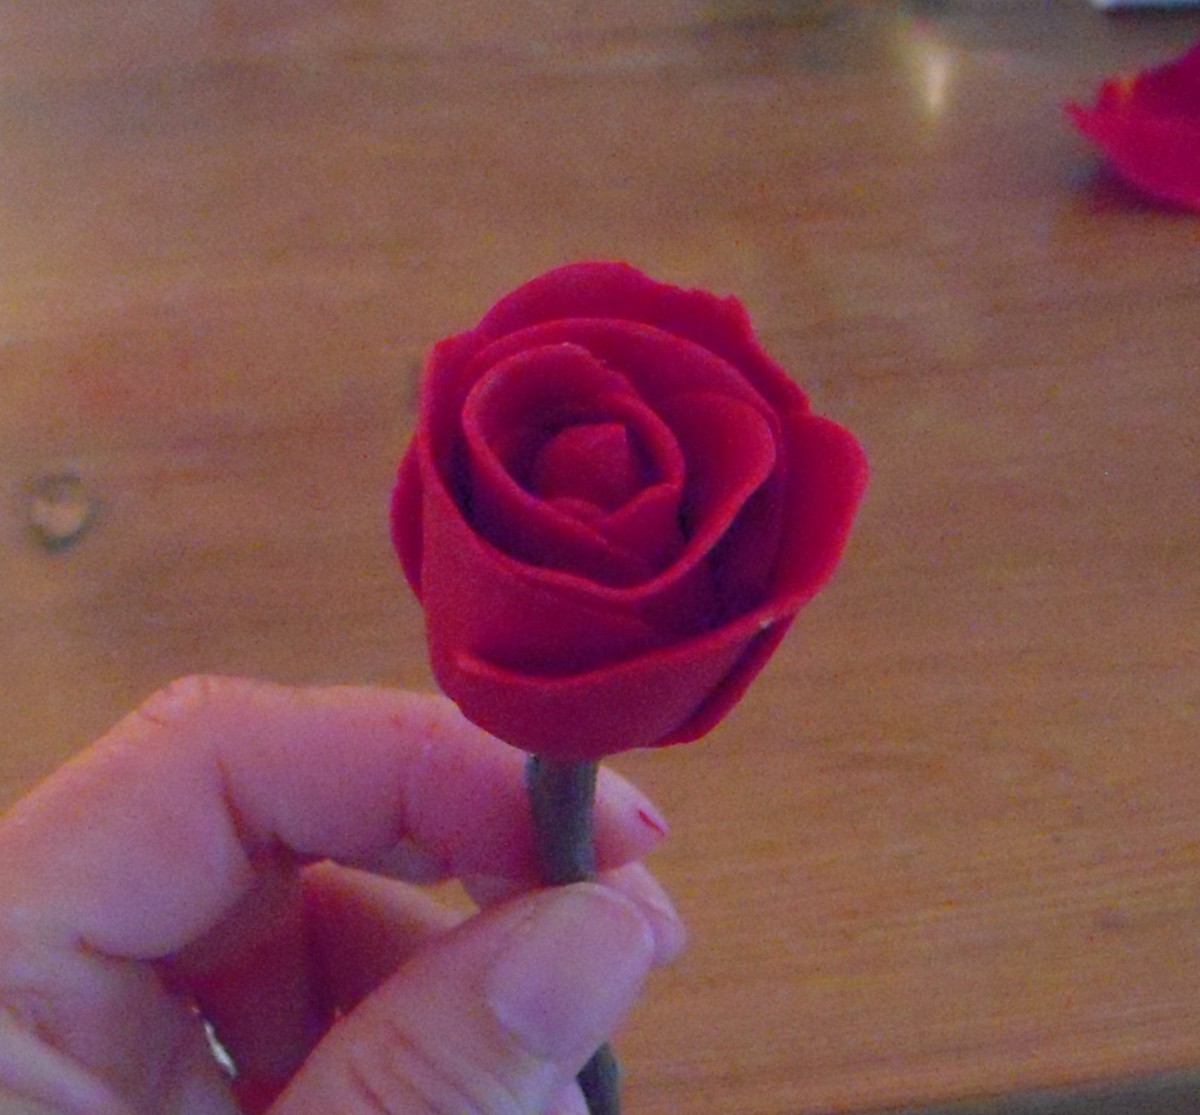 How to Create a Rose With Modeling Clay